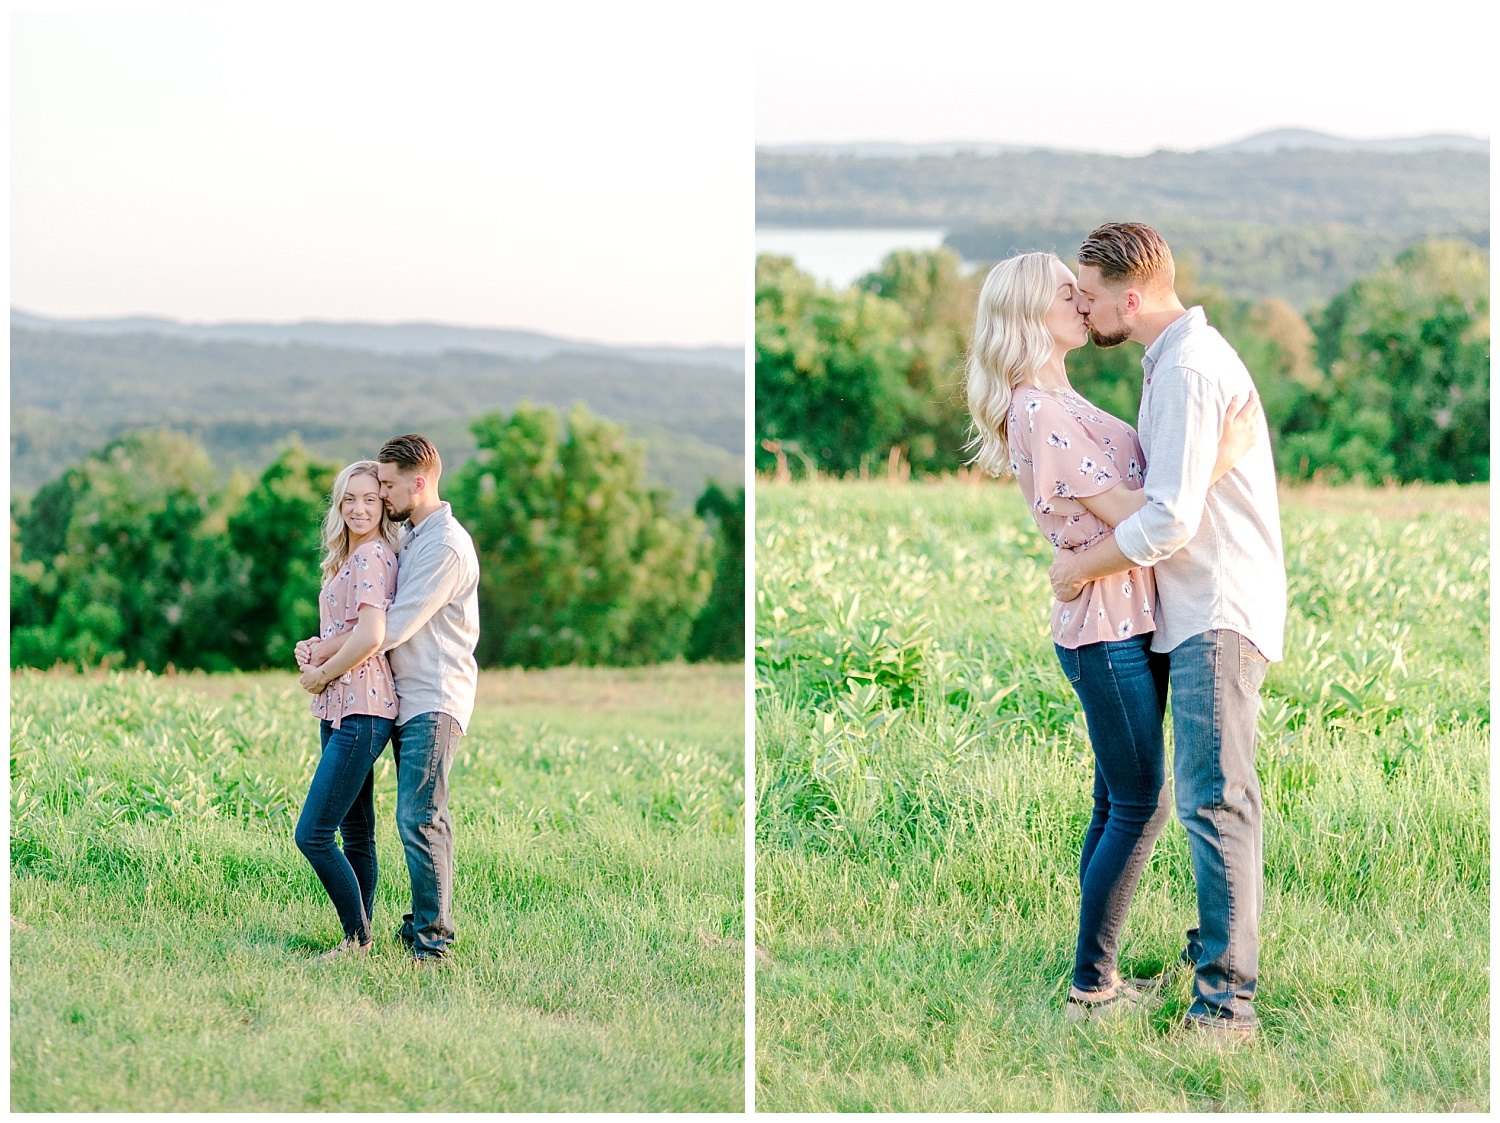 Blue Marsh Lake Reading Pennsylvania flower field golden hour engagement session by PA based wedding and lifestyle photographer Lytle photography_0020.jpg